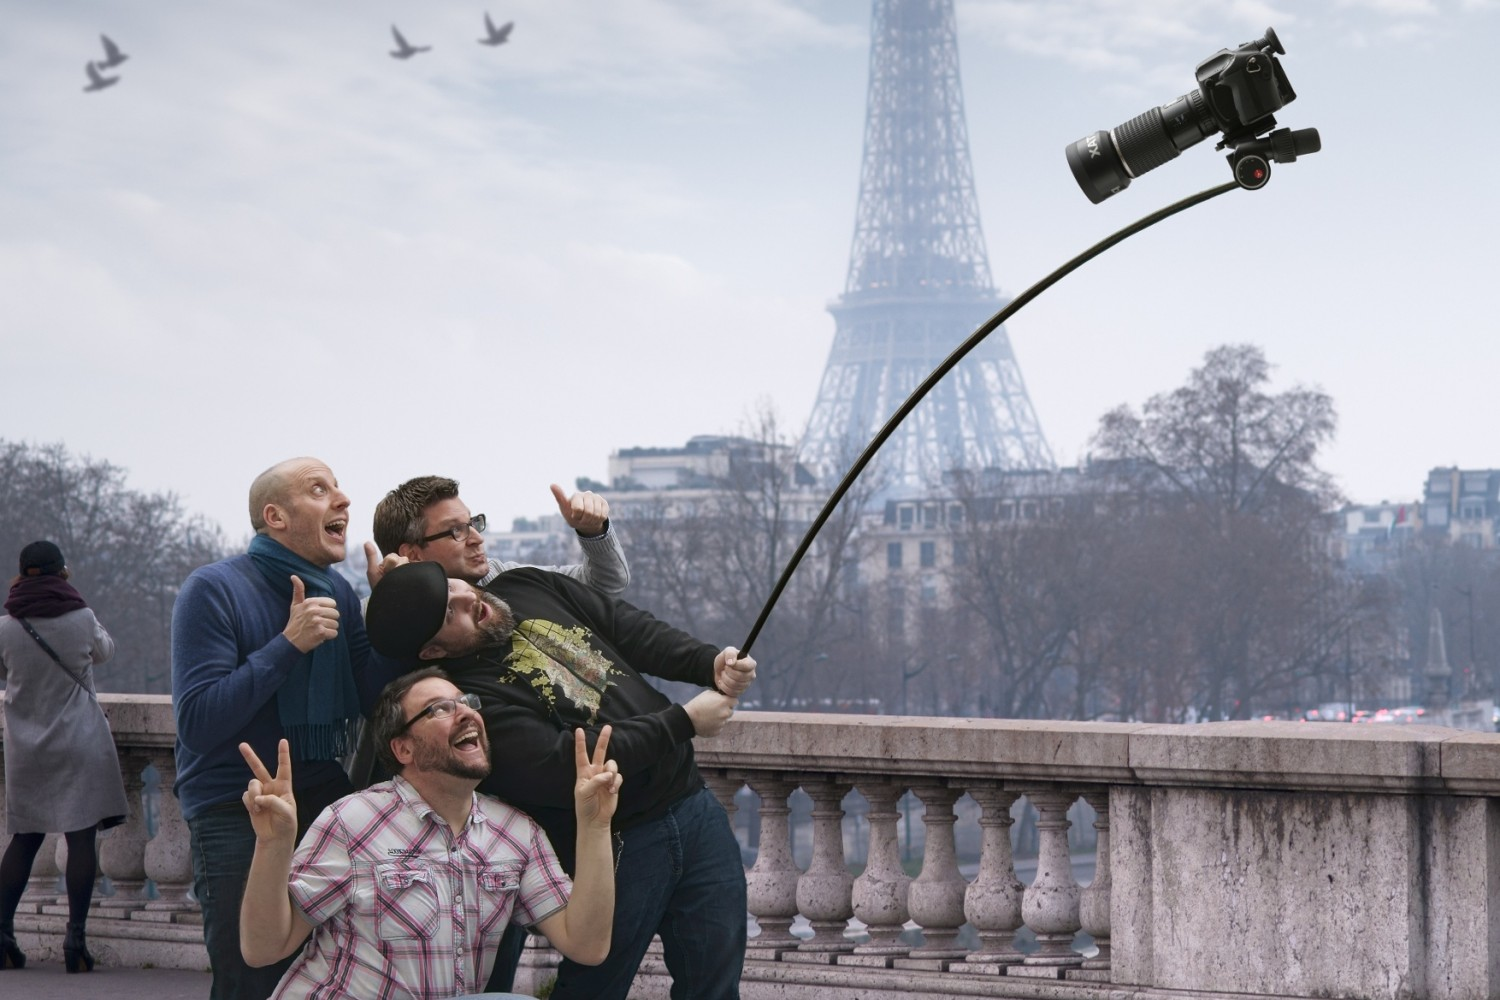 Humor: It's Not a Selfie Stick, It's a Monopod!!!